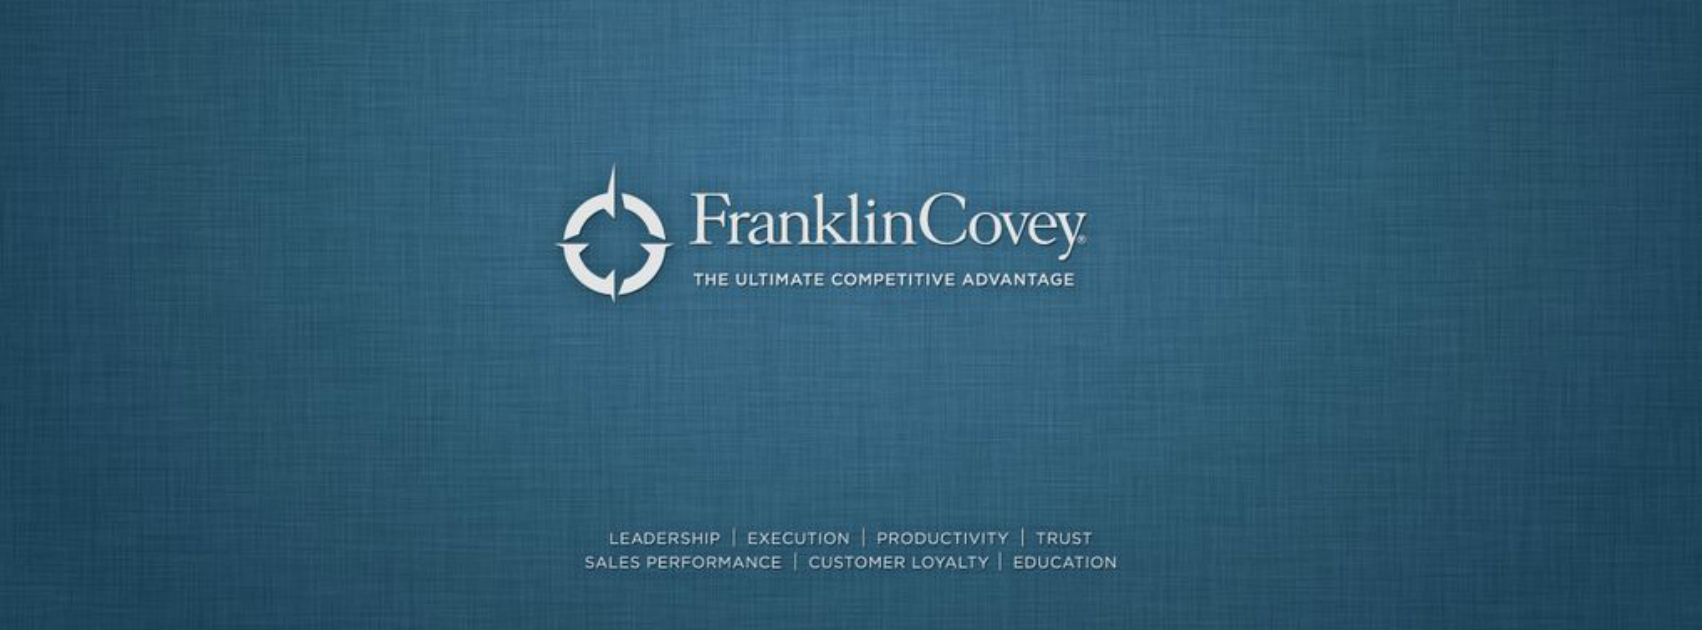 Among other products, the company markets the FranklinCovey planning system, modeled in part on the writings of Benjamin Franklin, and The 7 Habits of Highly Effective People, based on Covey's research. FC Organizational Products, LLC is the official licensee of FranklinCovey products.